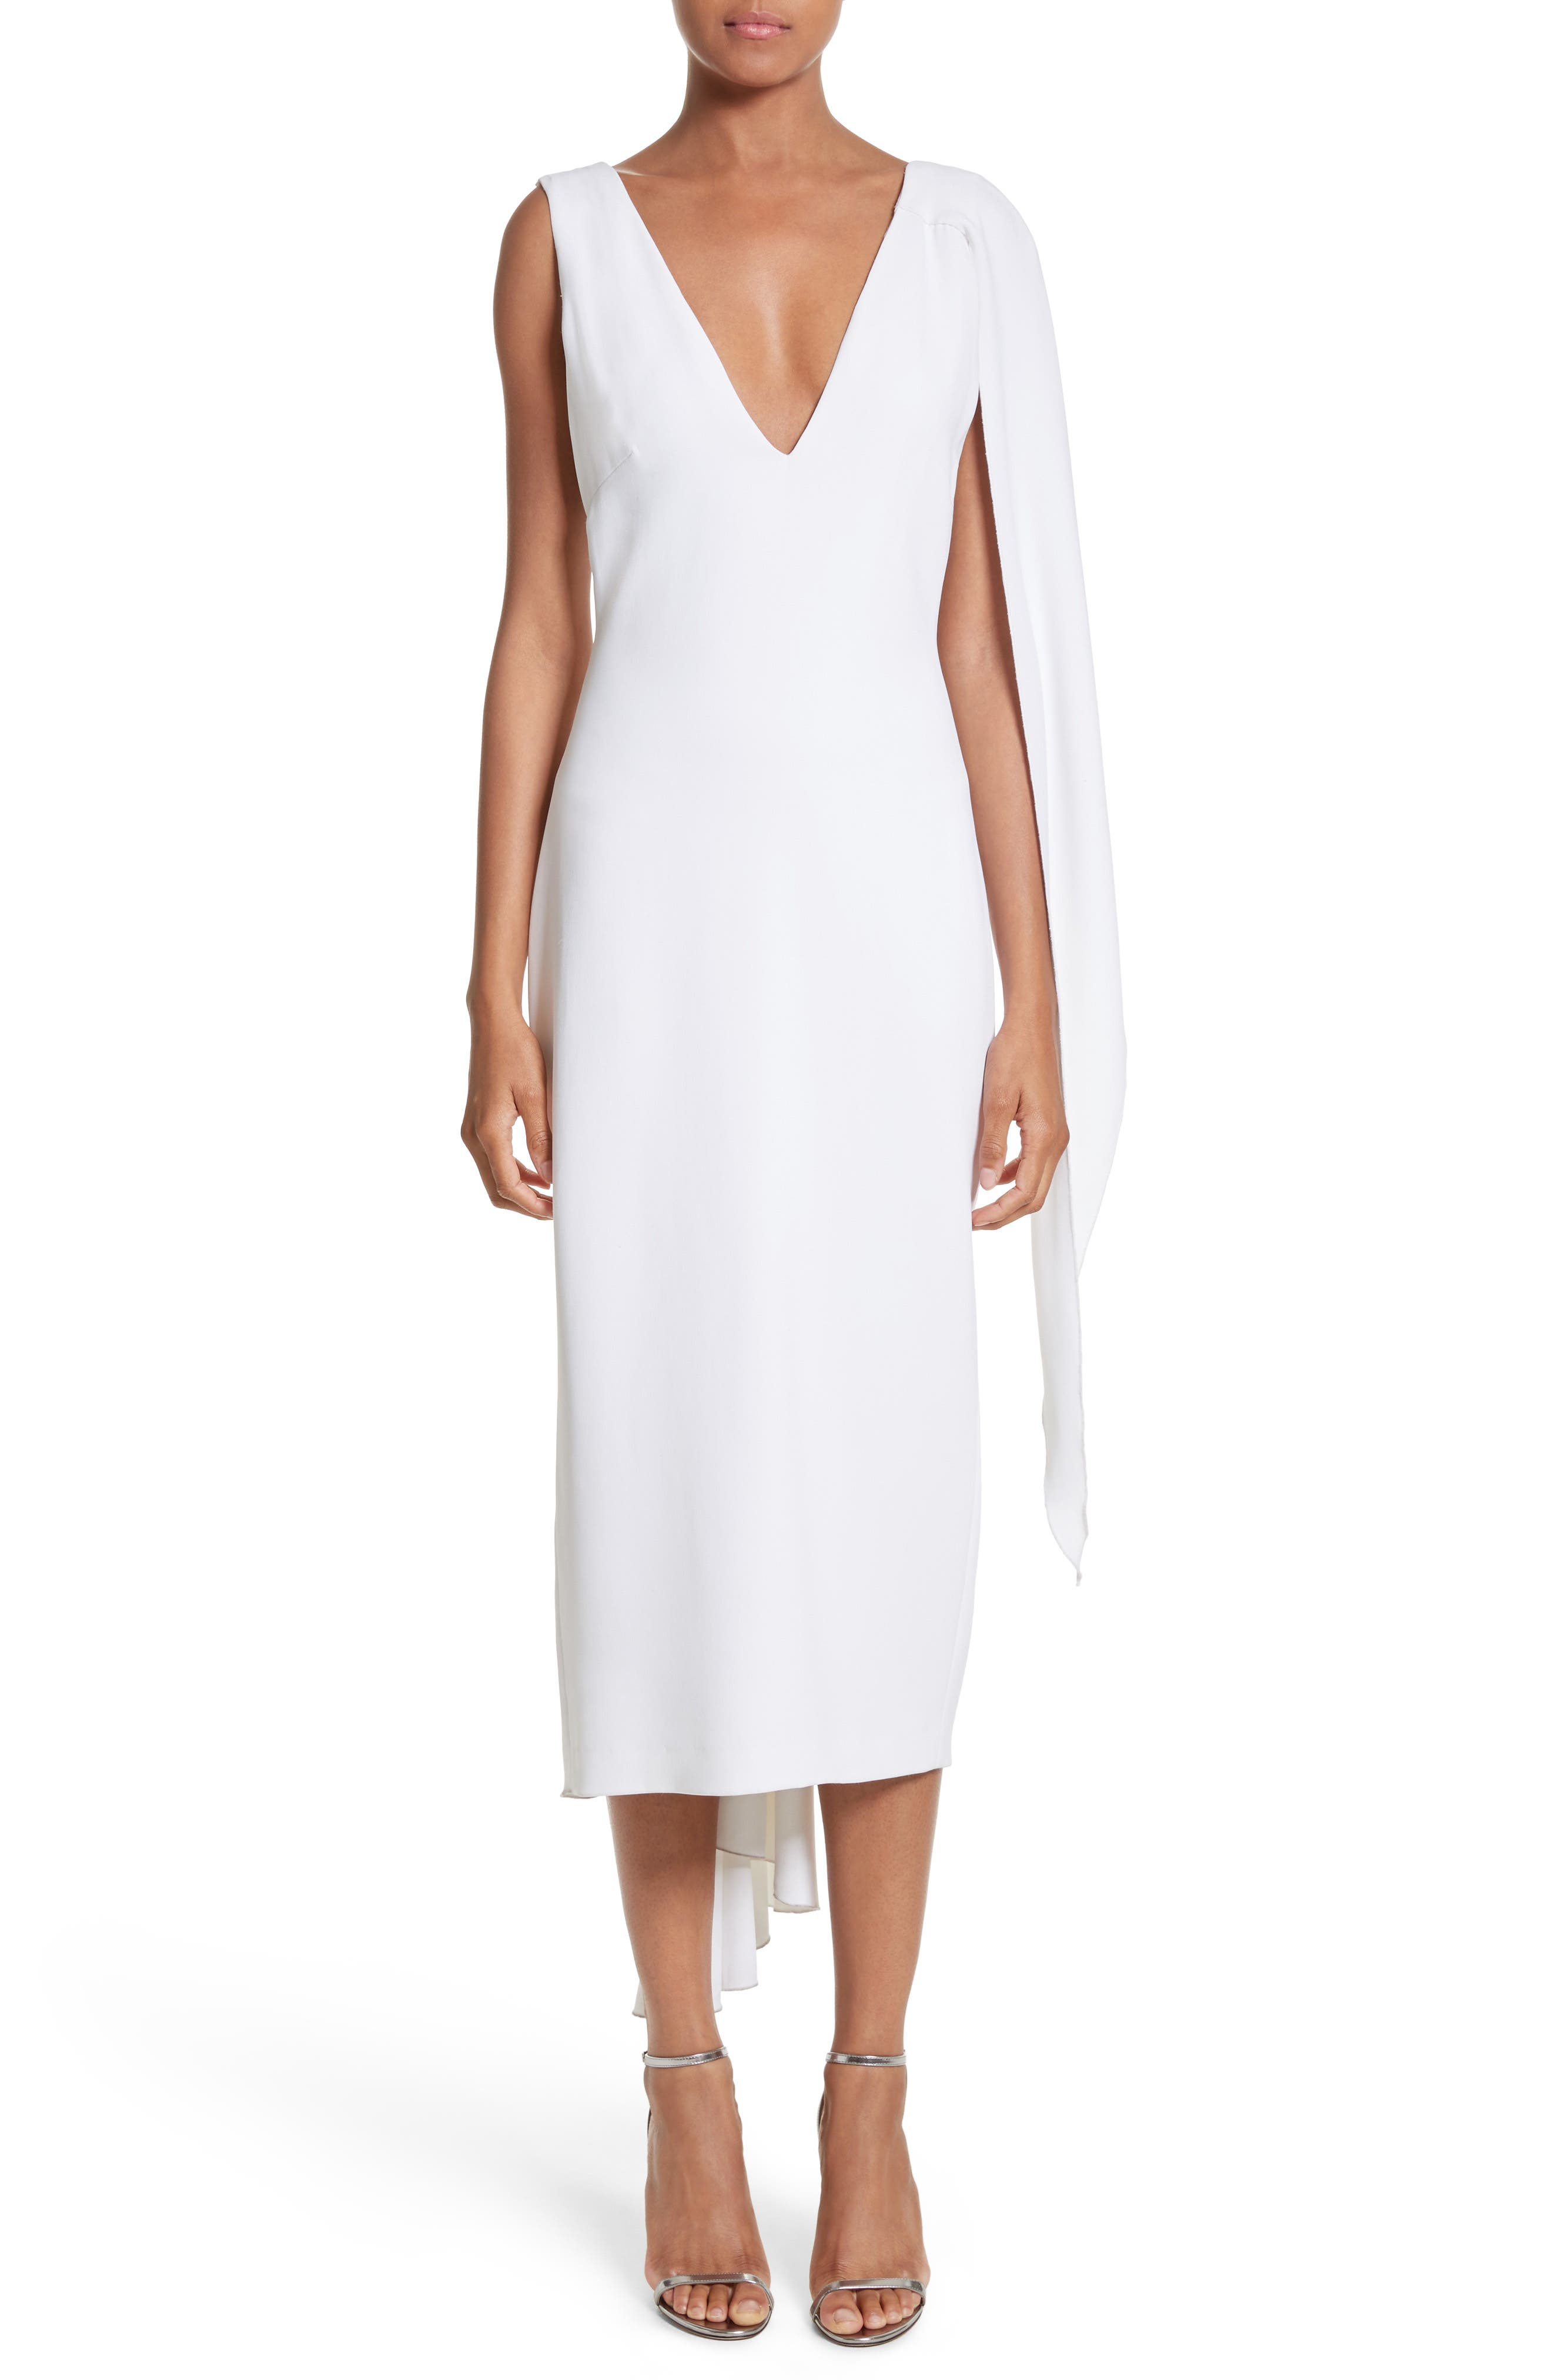 Leta Drape Dress,                         Main,                         color, WHITE